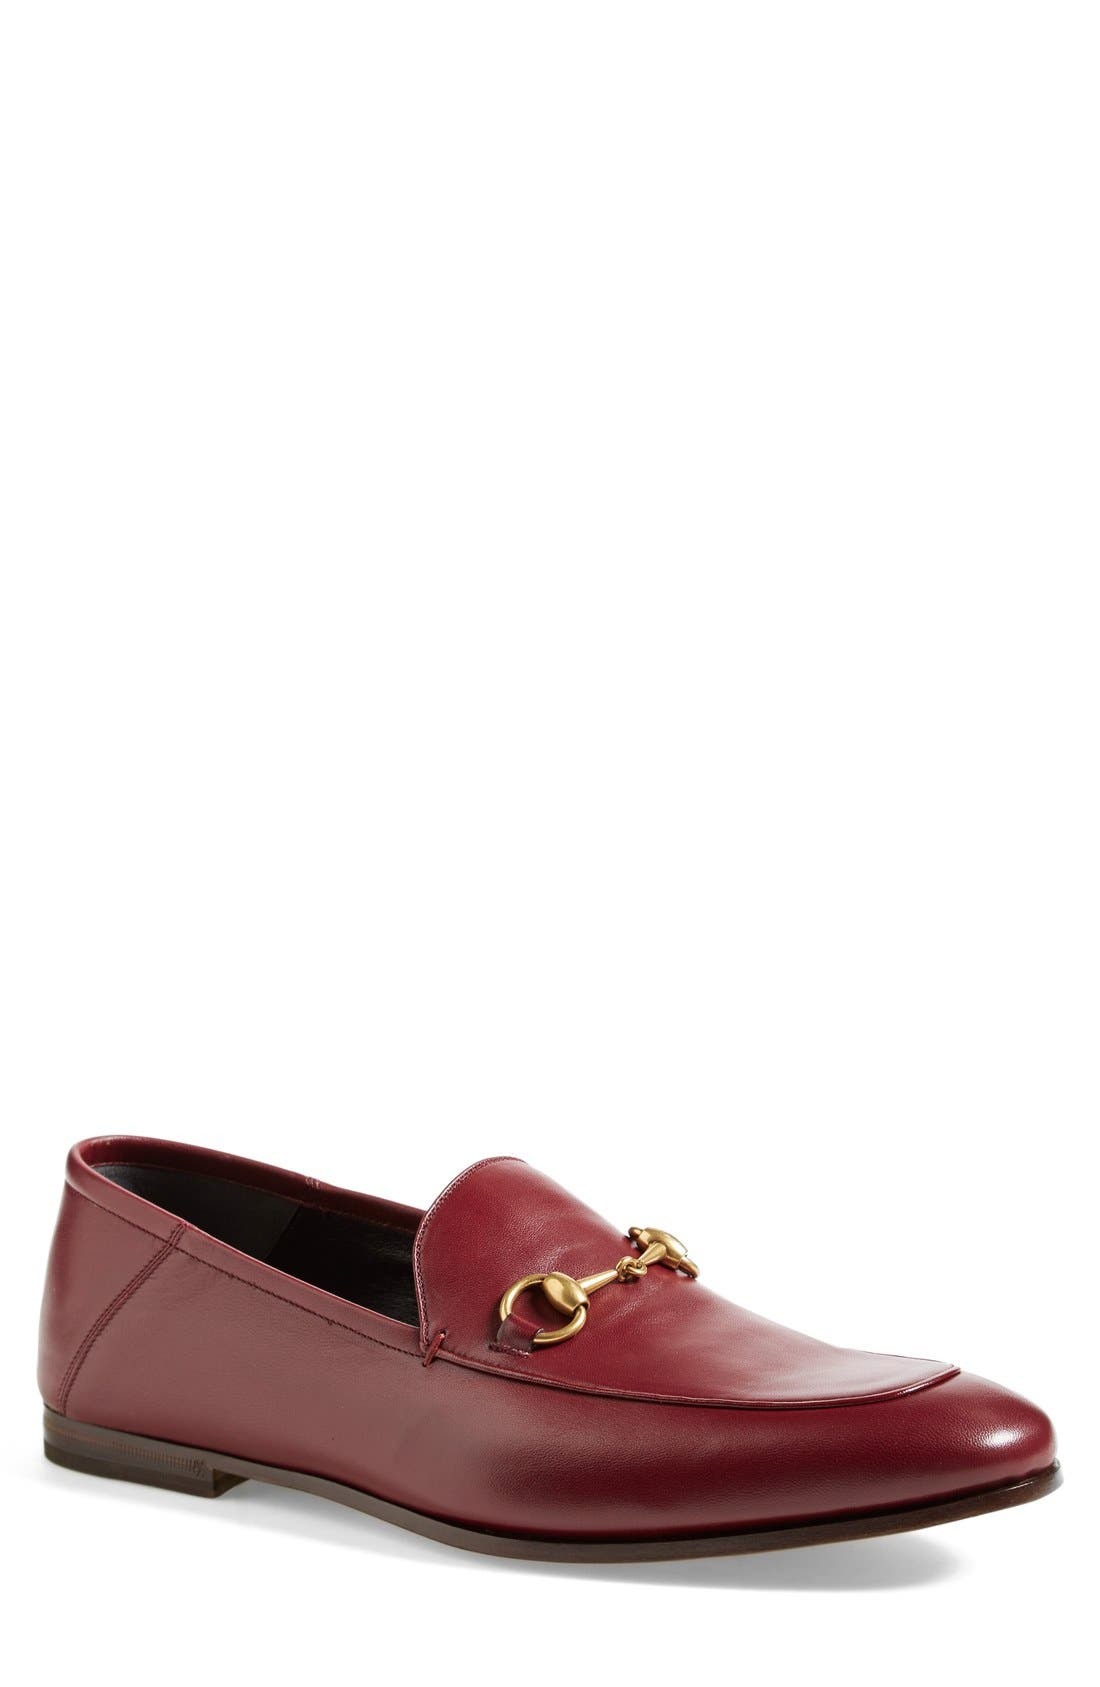 Brixton Leather Loafer,                             Main thumbnail 5, color,